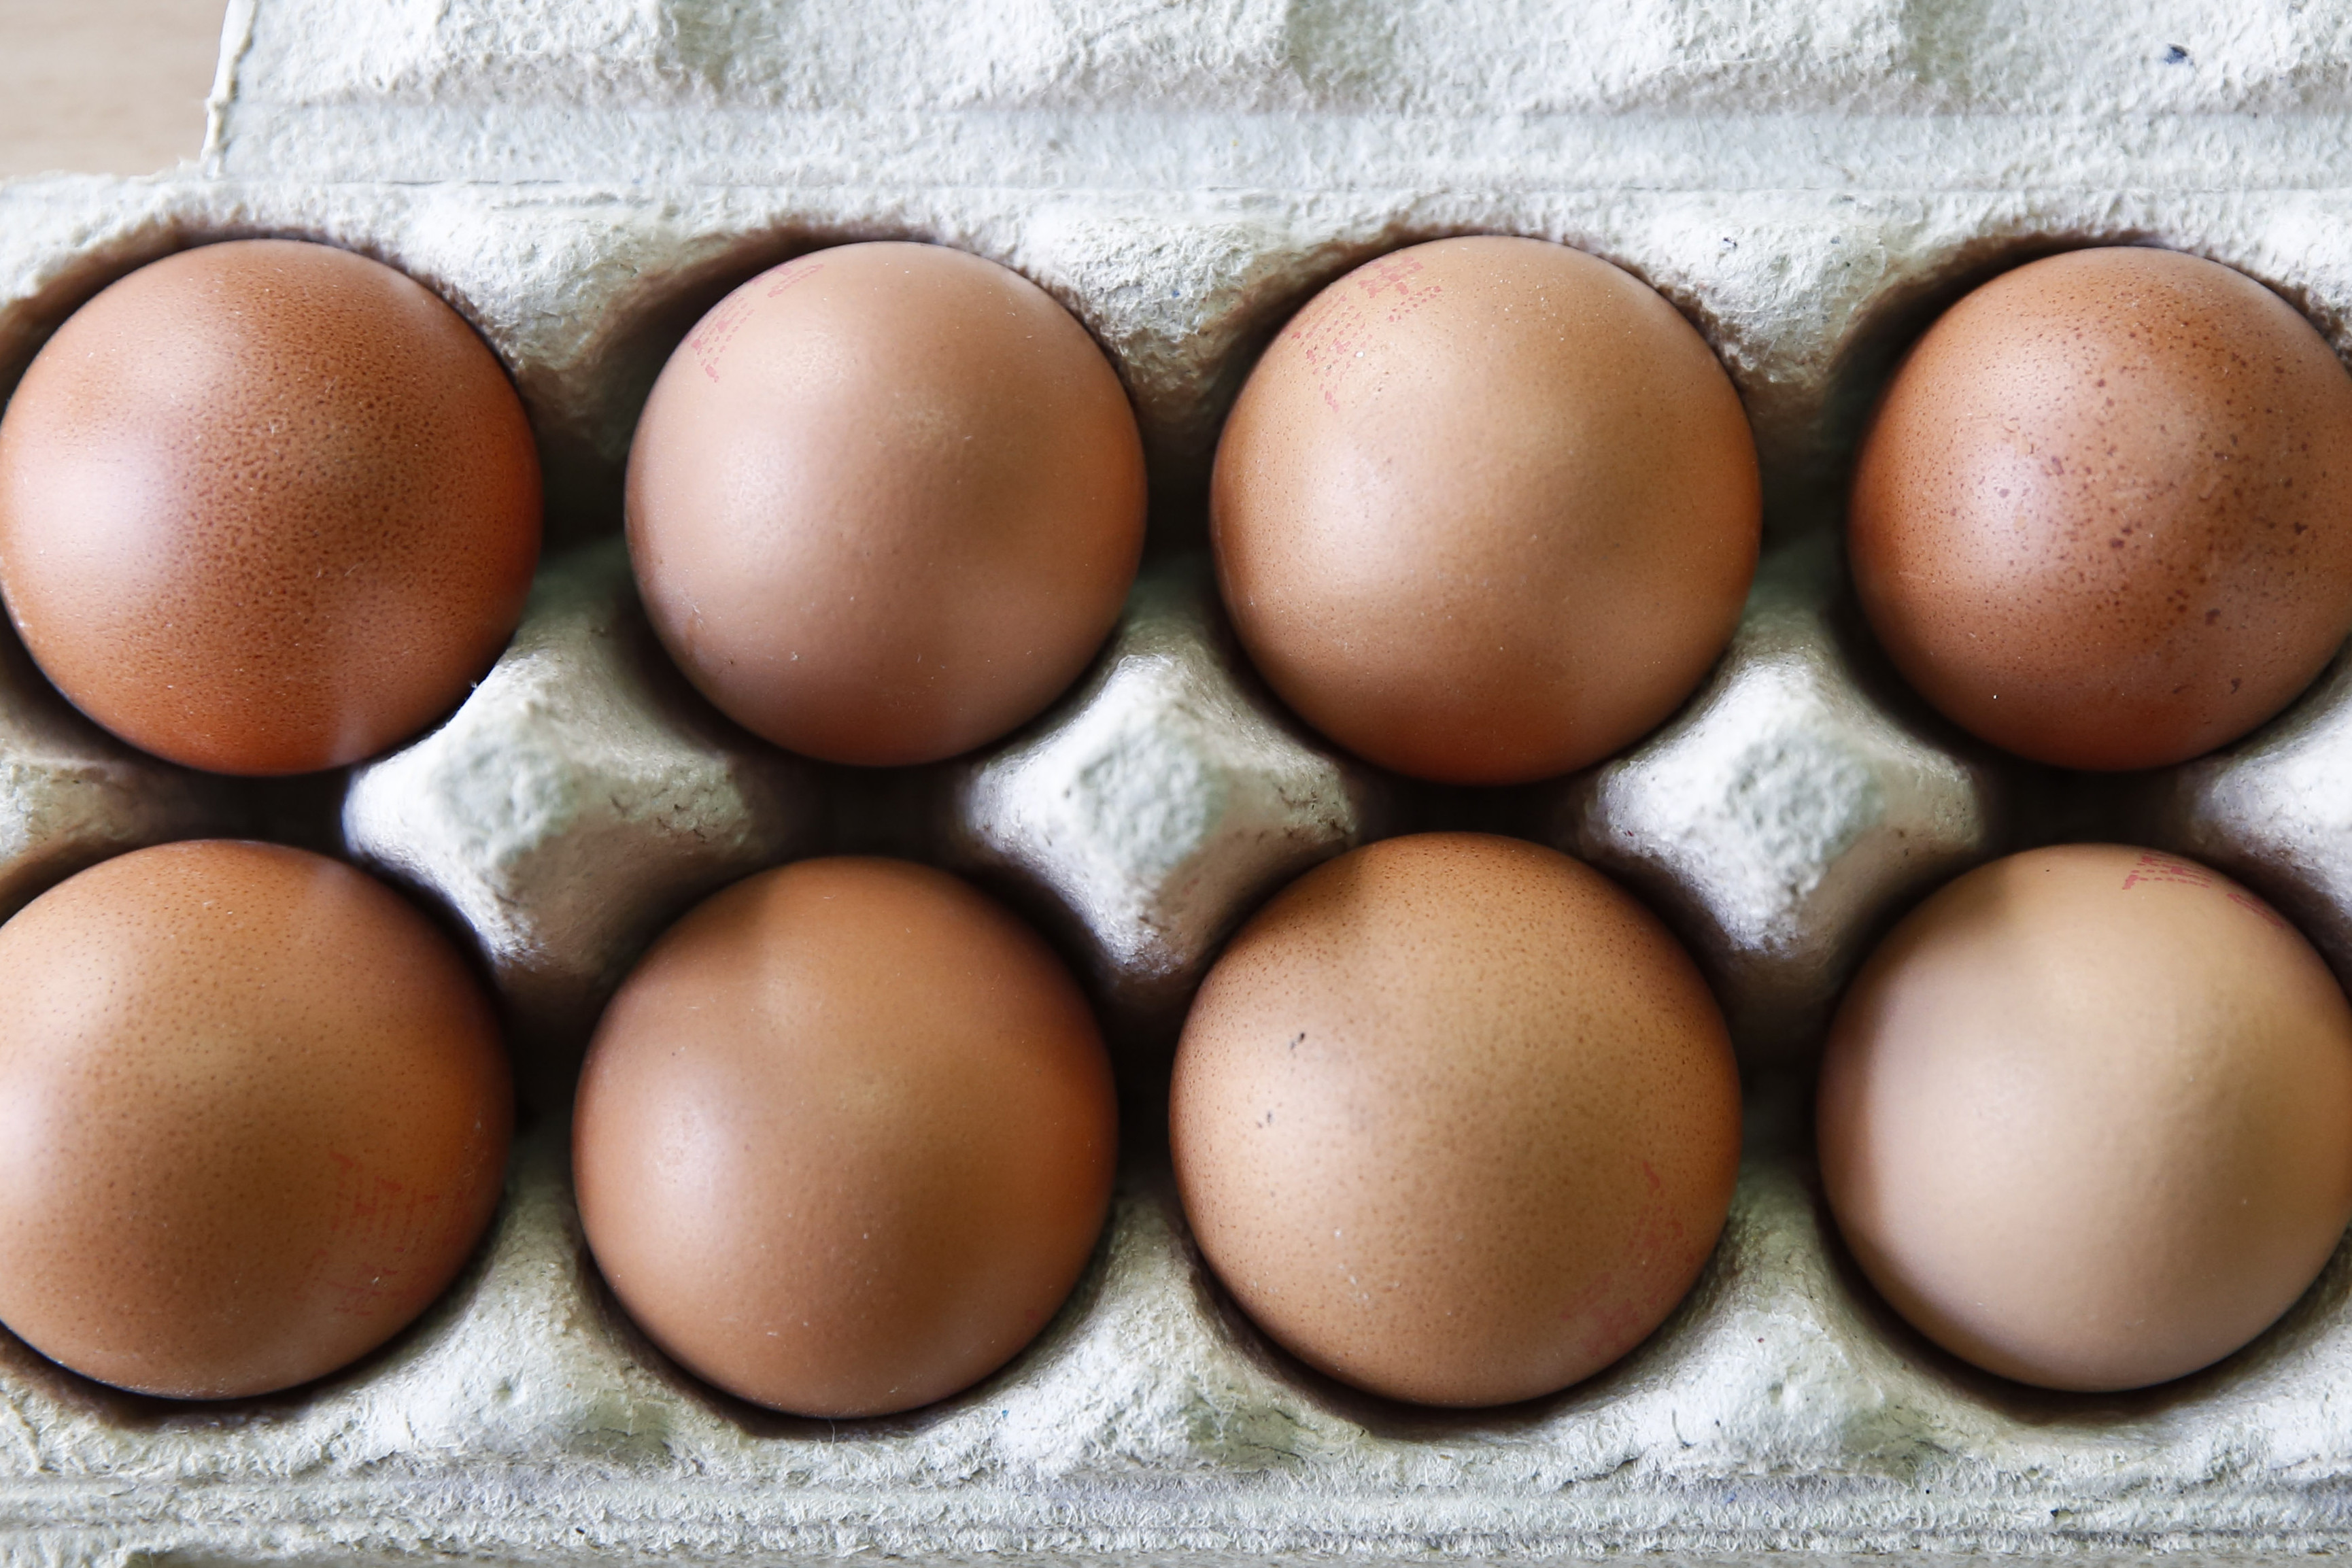 Lancs poultry farmer could lose home to pay court costs. Photo: Zinhua news agency / Rex / Shutterstock